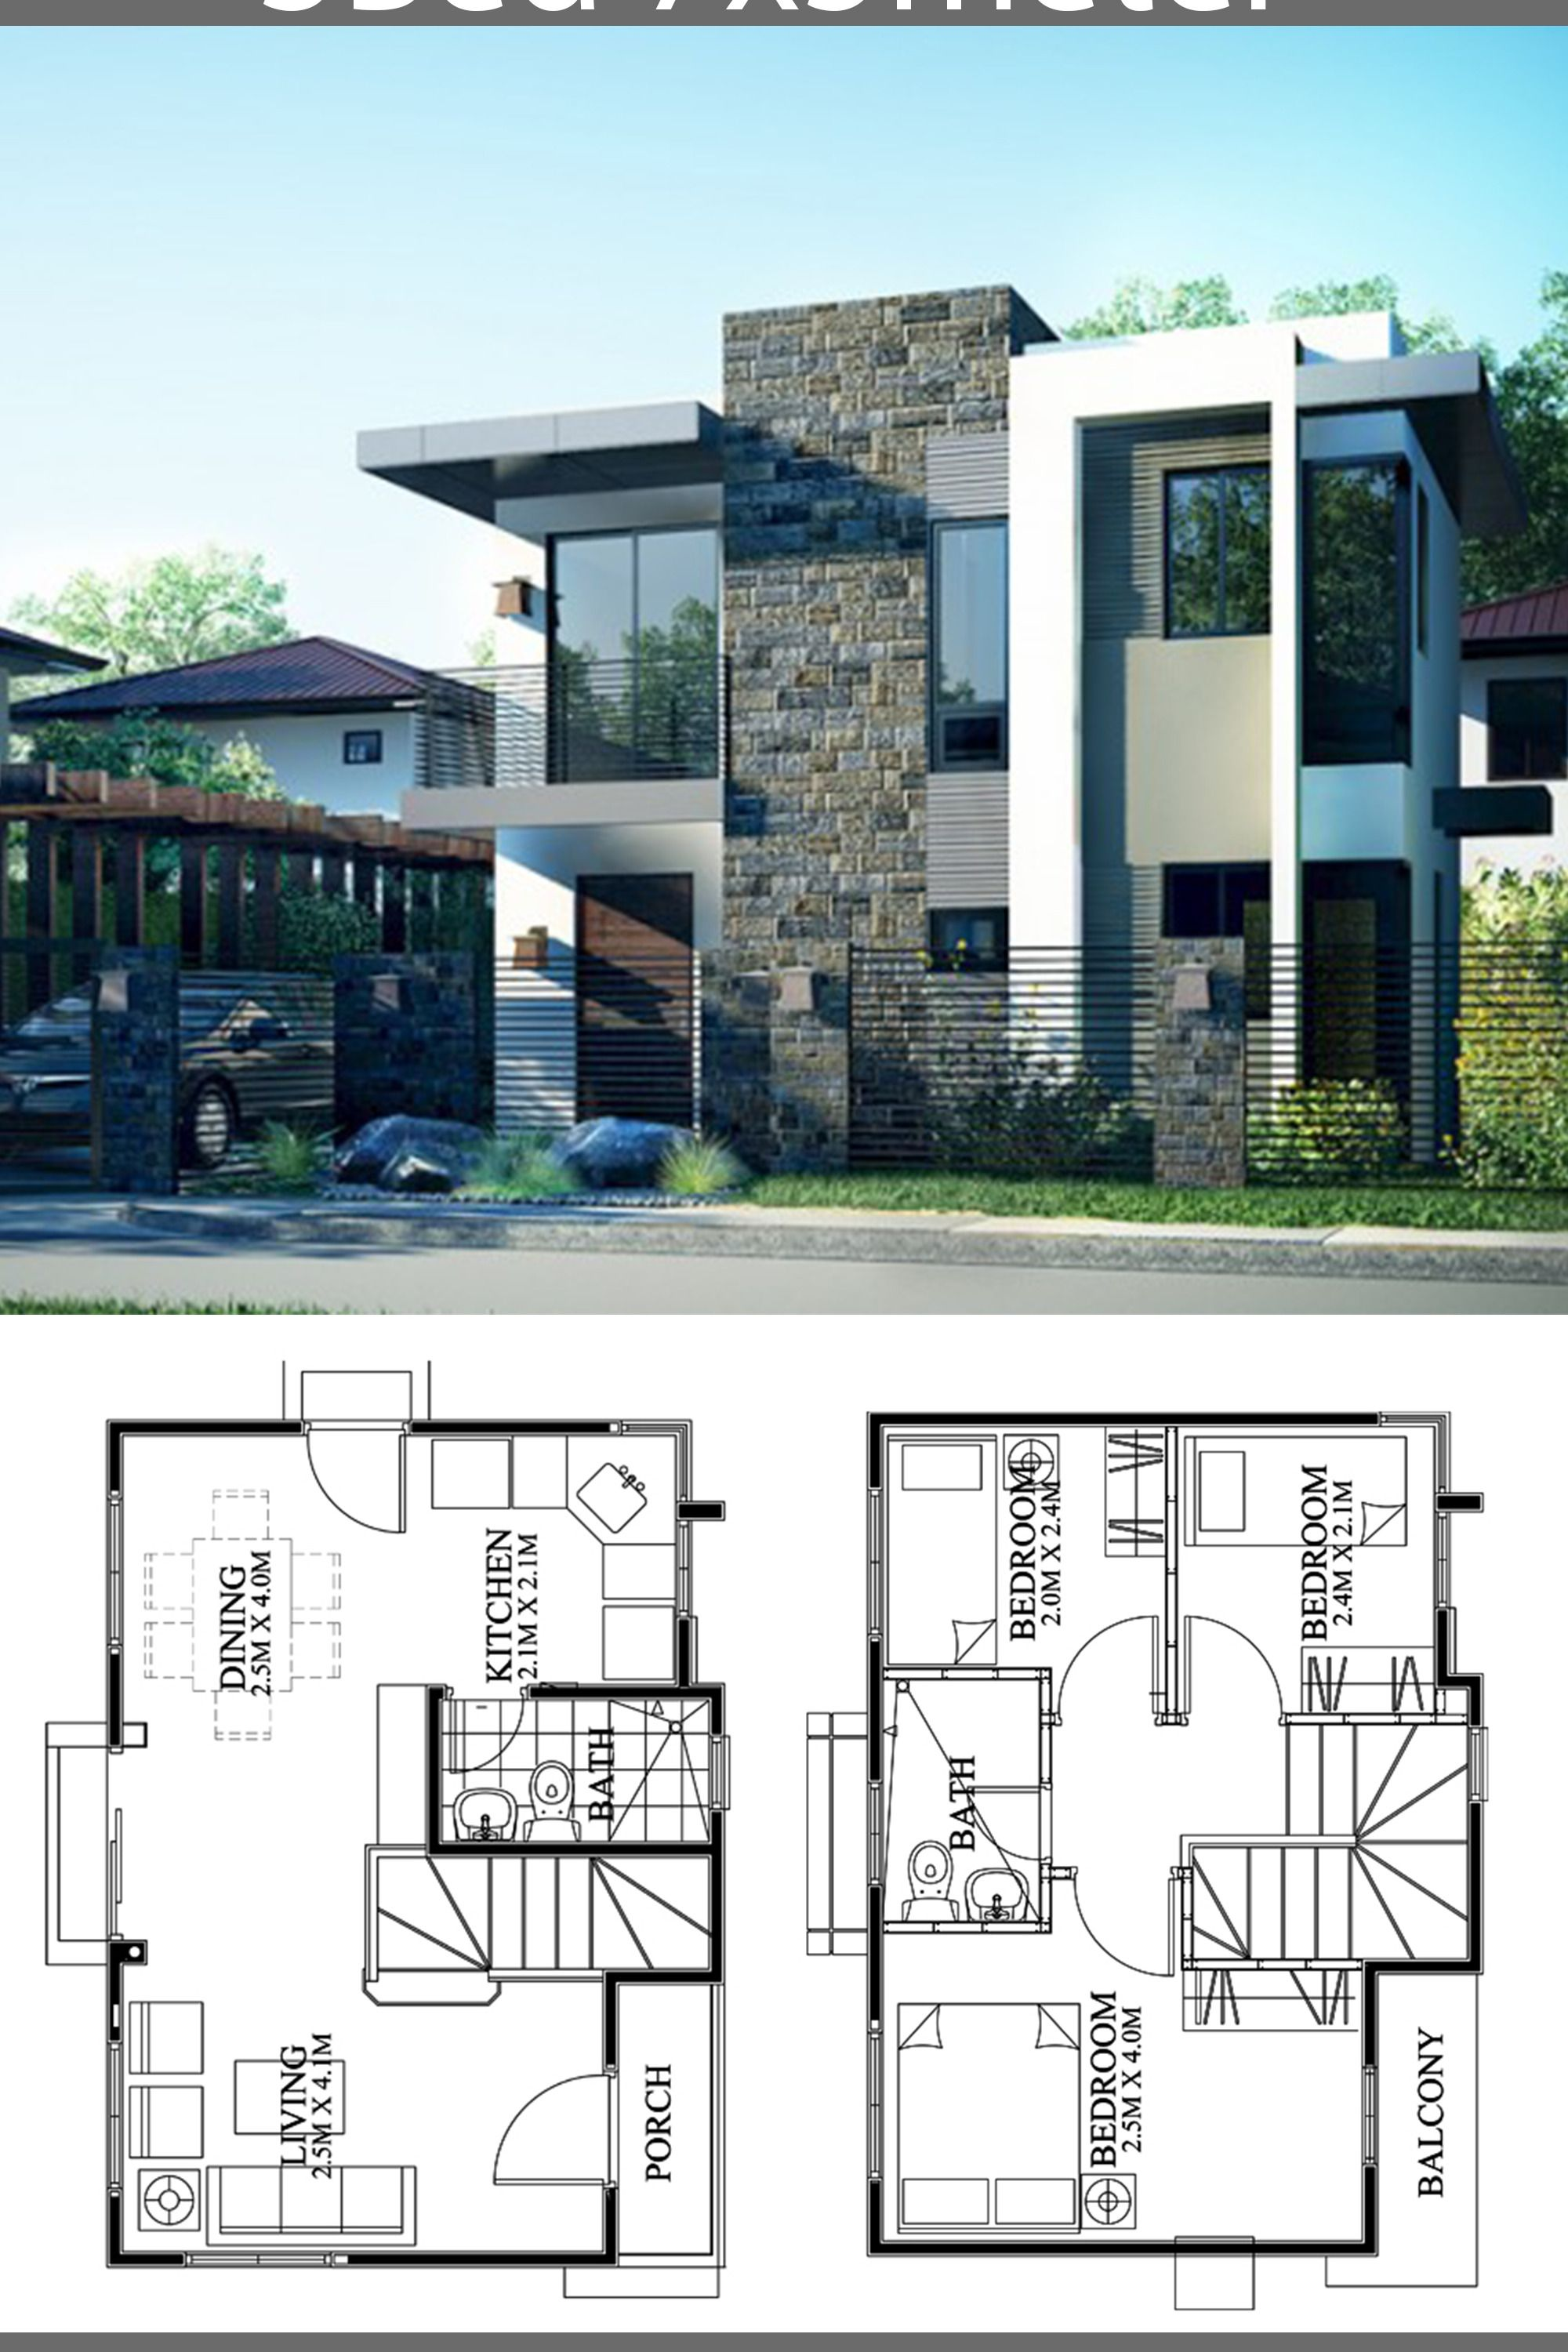 Pin By Christopher Hayes On My Dream Home With Layout Plan Small House Design Plans Architectural House Plans Home Design Plan